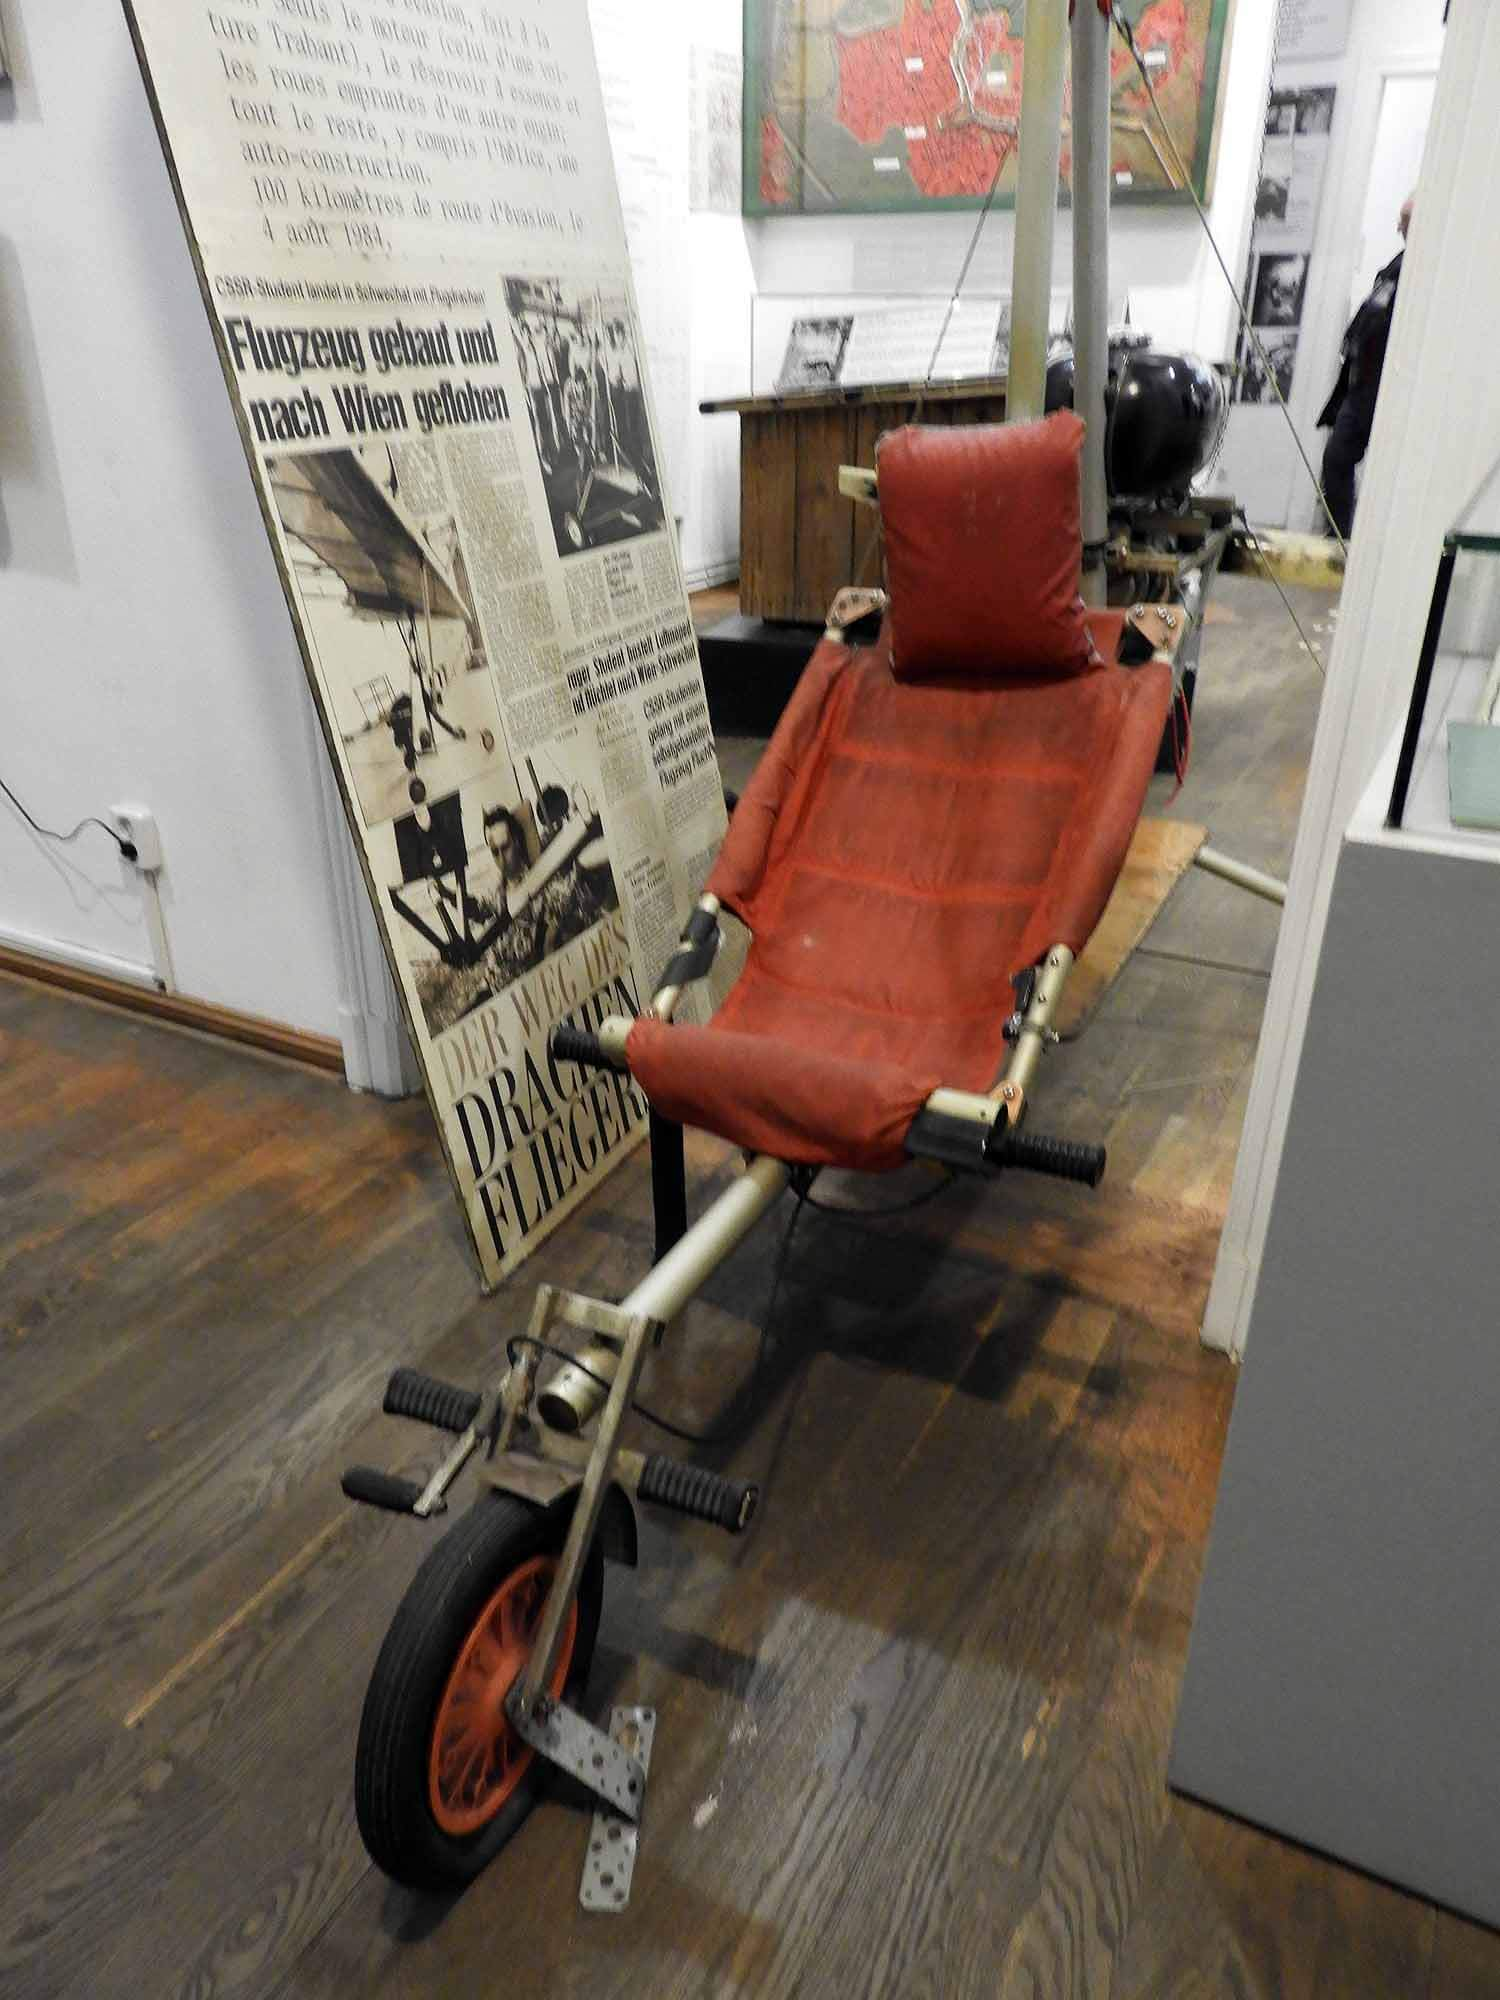 germany-berlin-checkpoint-charlie-museum-escape-east-communist-airplane.JPG